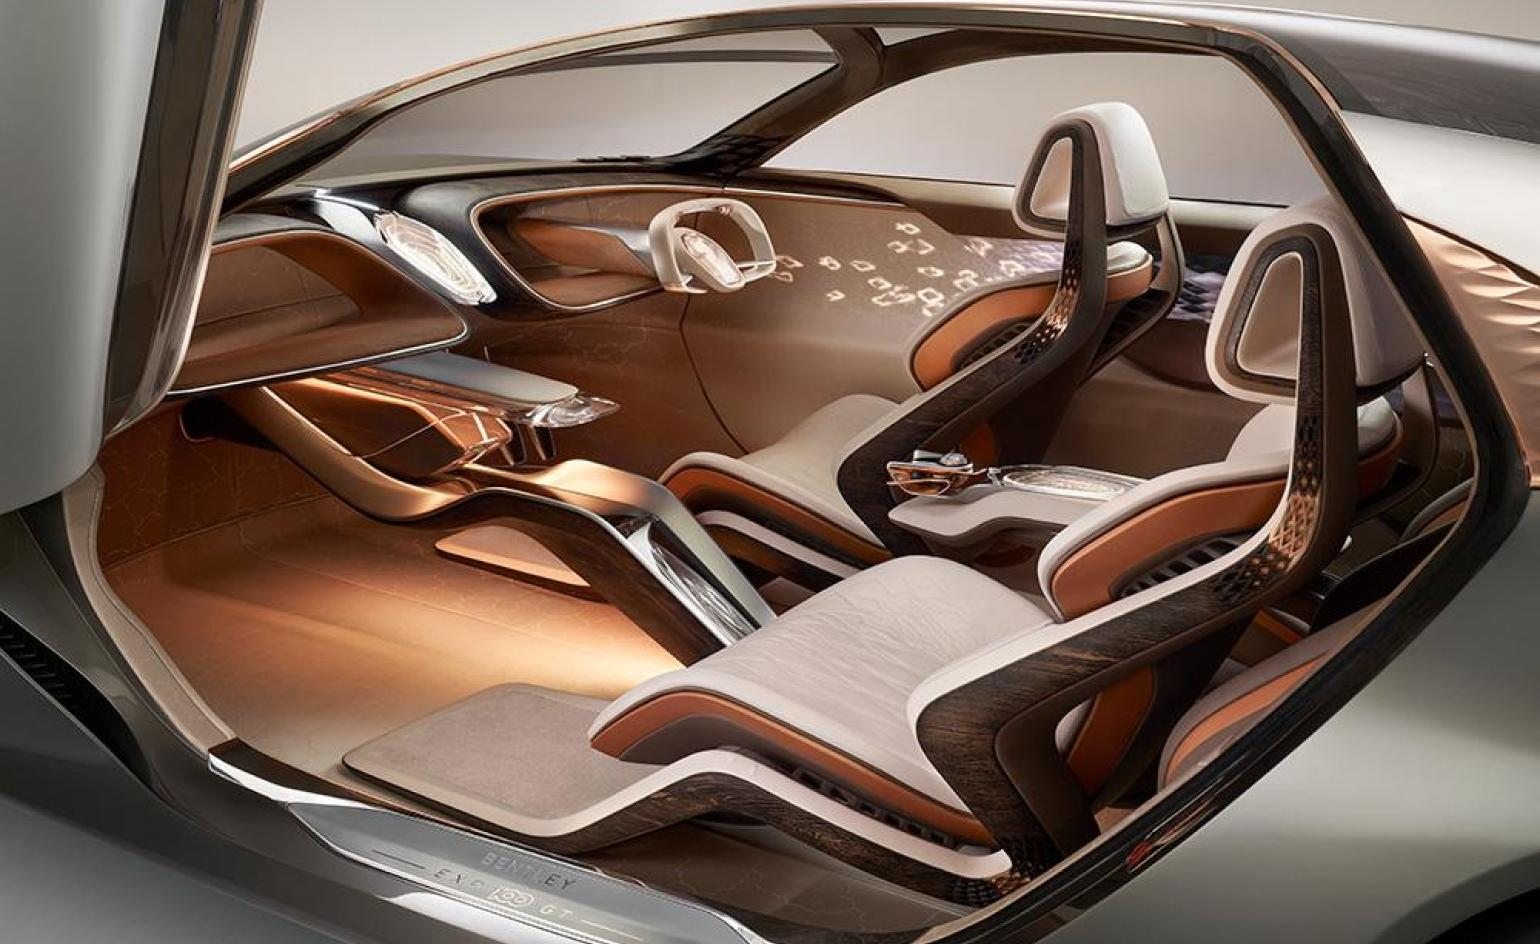 Bentley Exp 100 Gt Is The Concept Car Of The Future Wallpaper